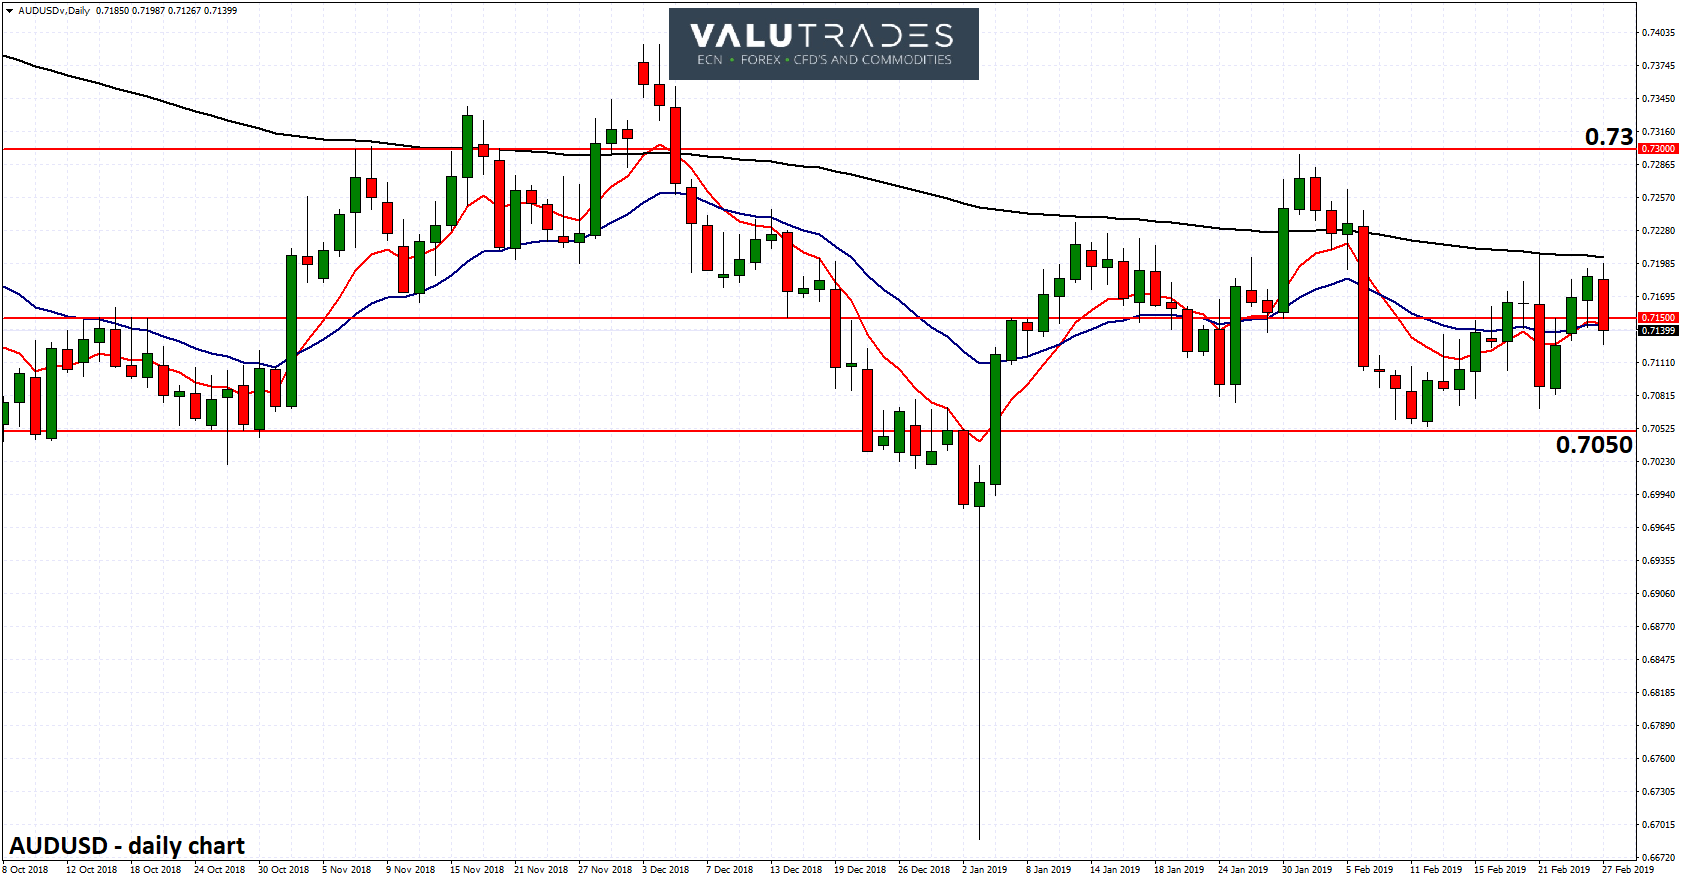 AUDUSD - Looking for Support at 0.7050 Again as RBA Now Open to Cuts